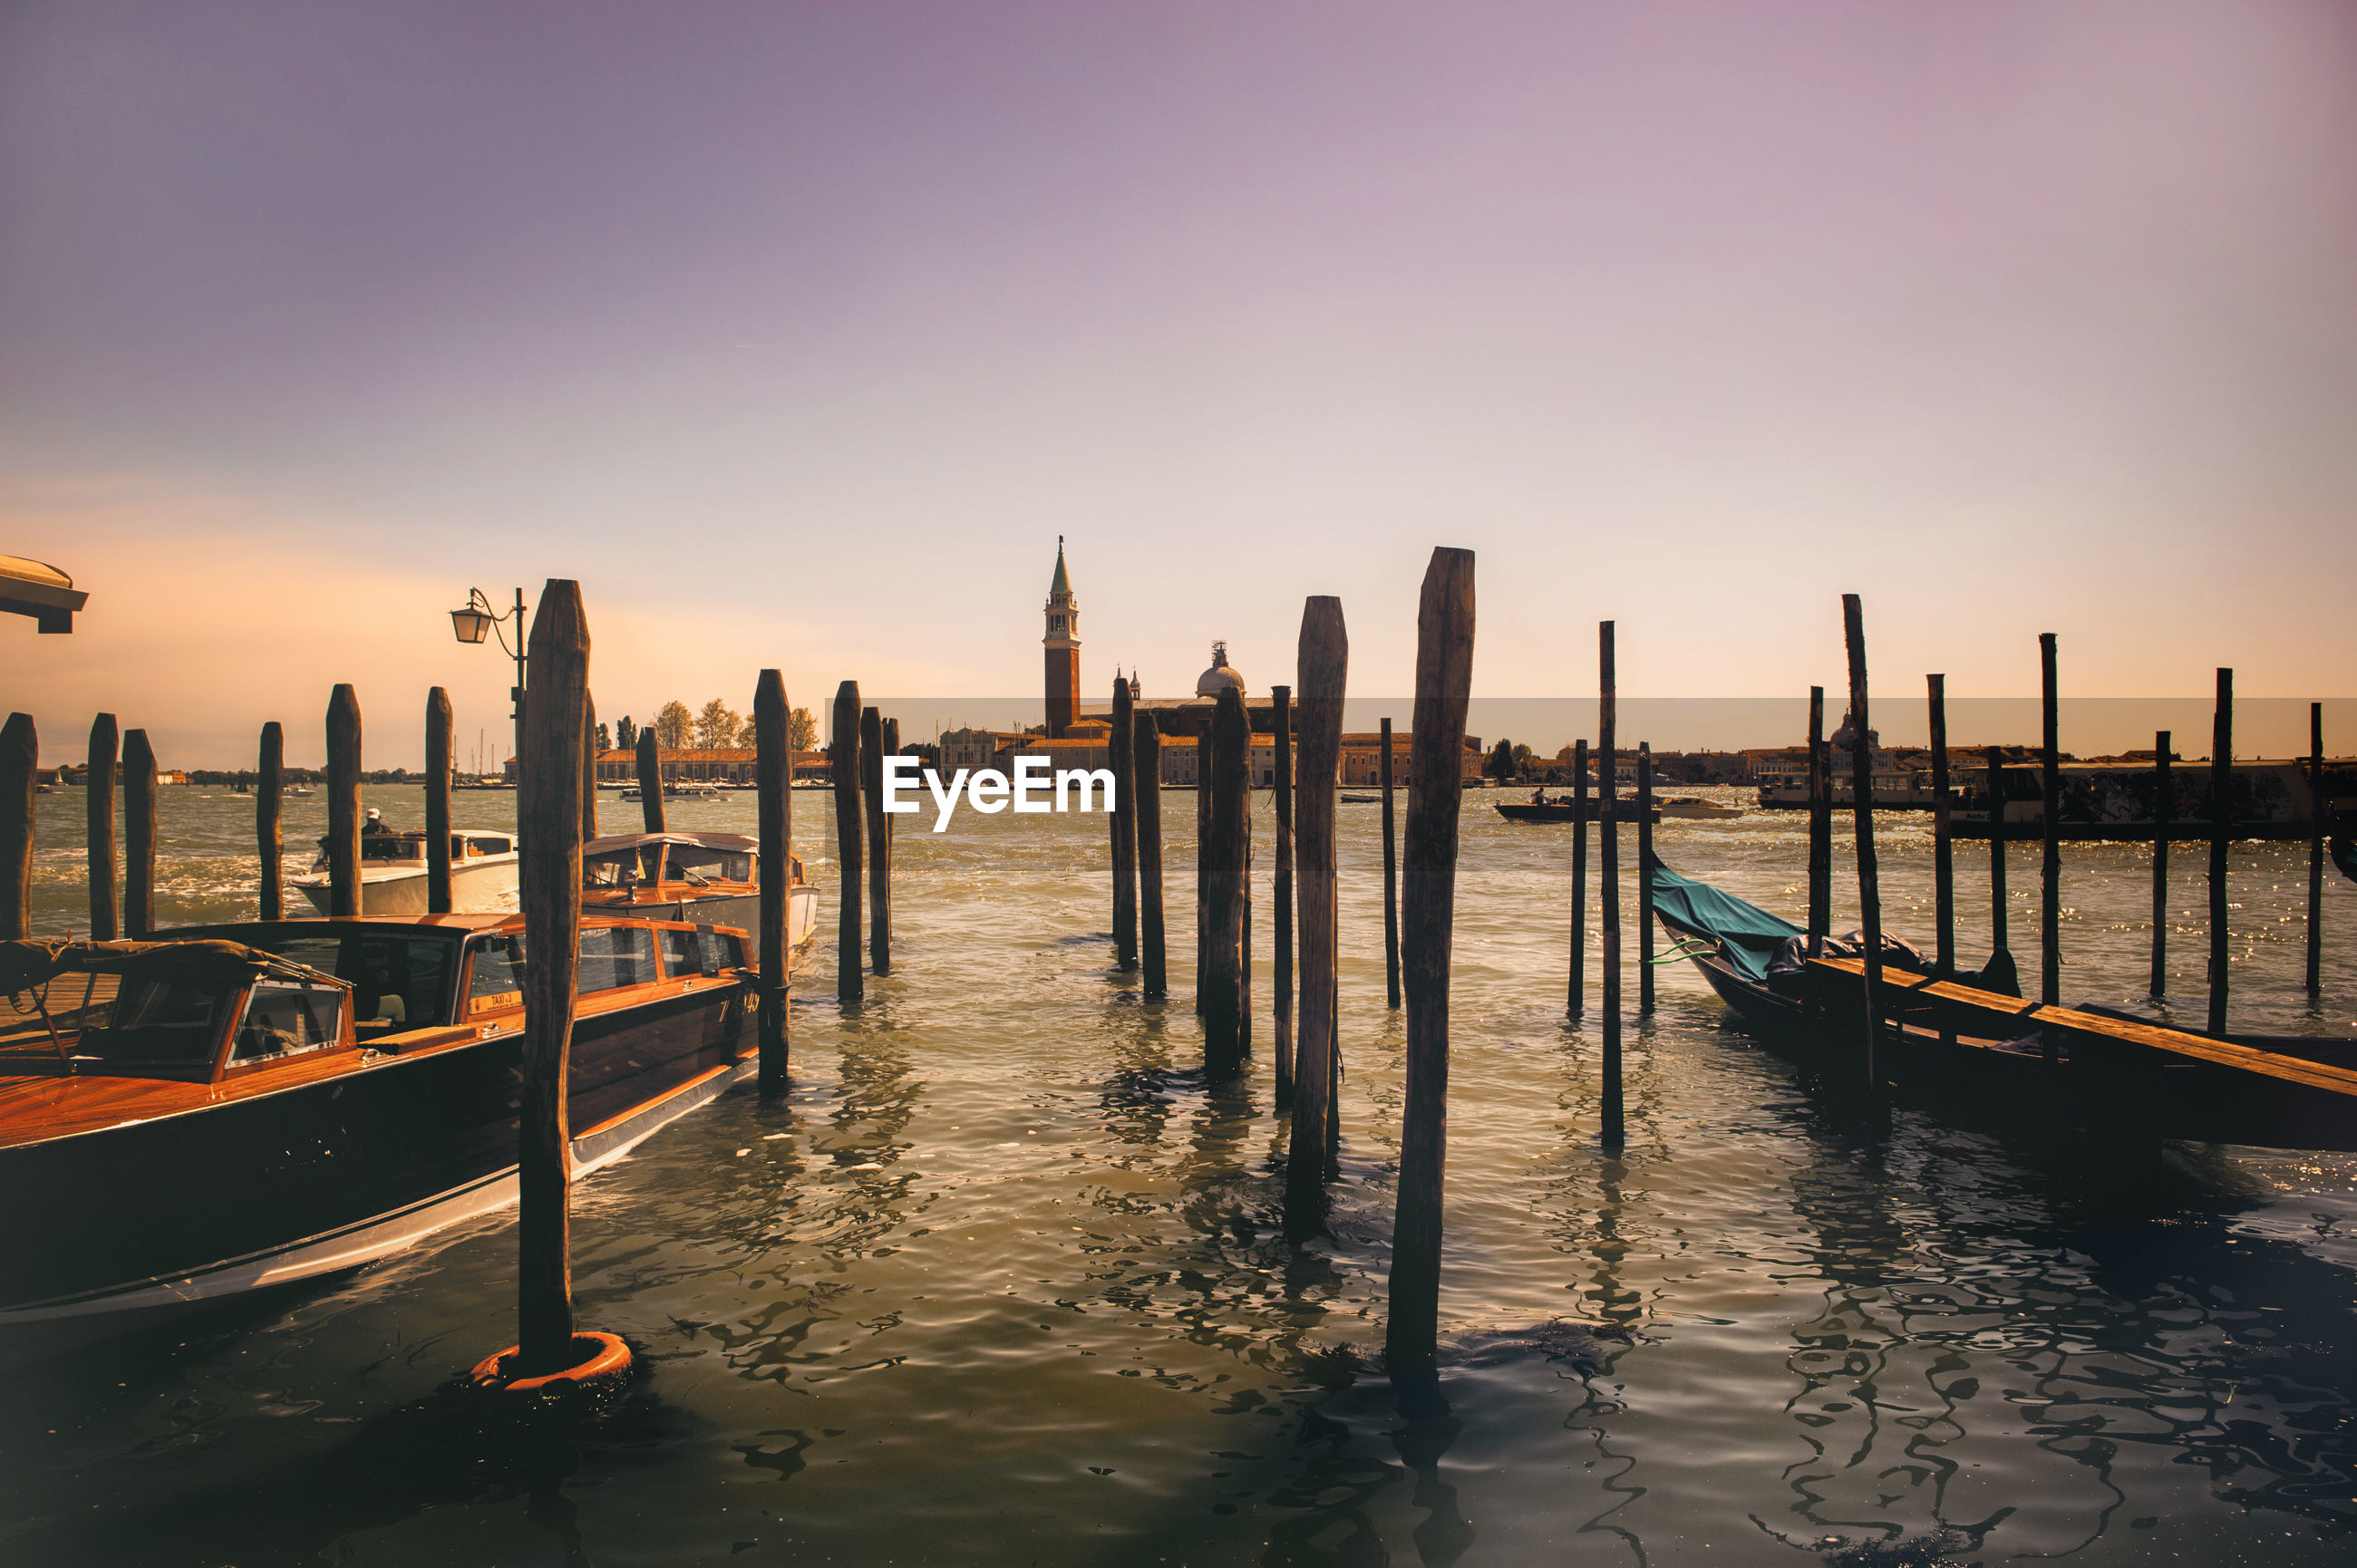 Gondolas amidst wooden posts in grand canal against sky